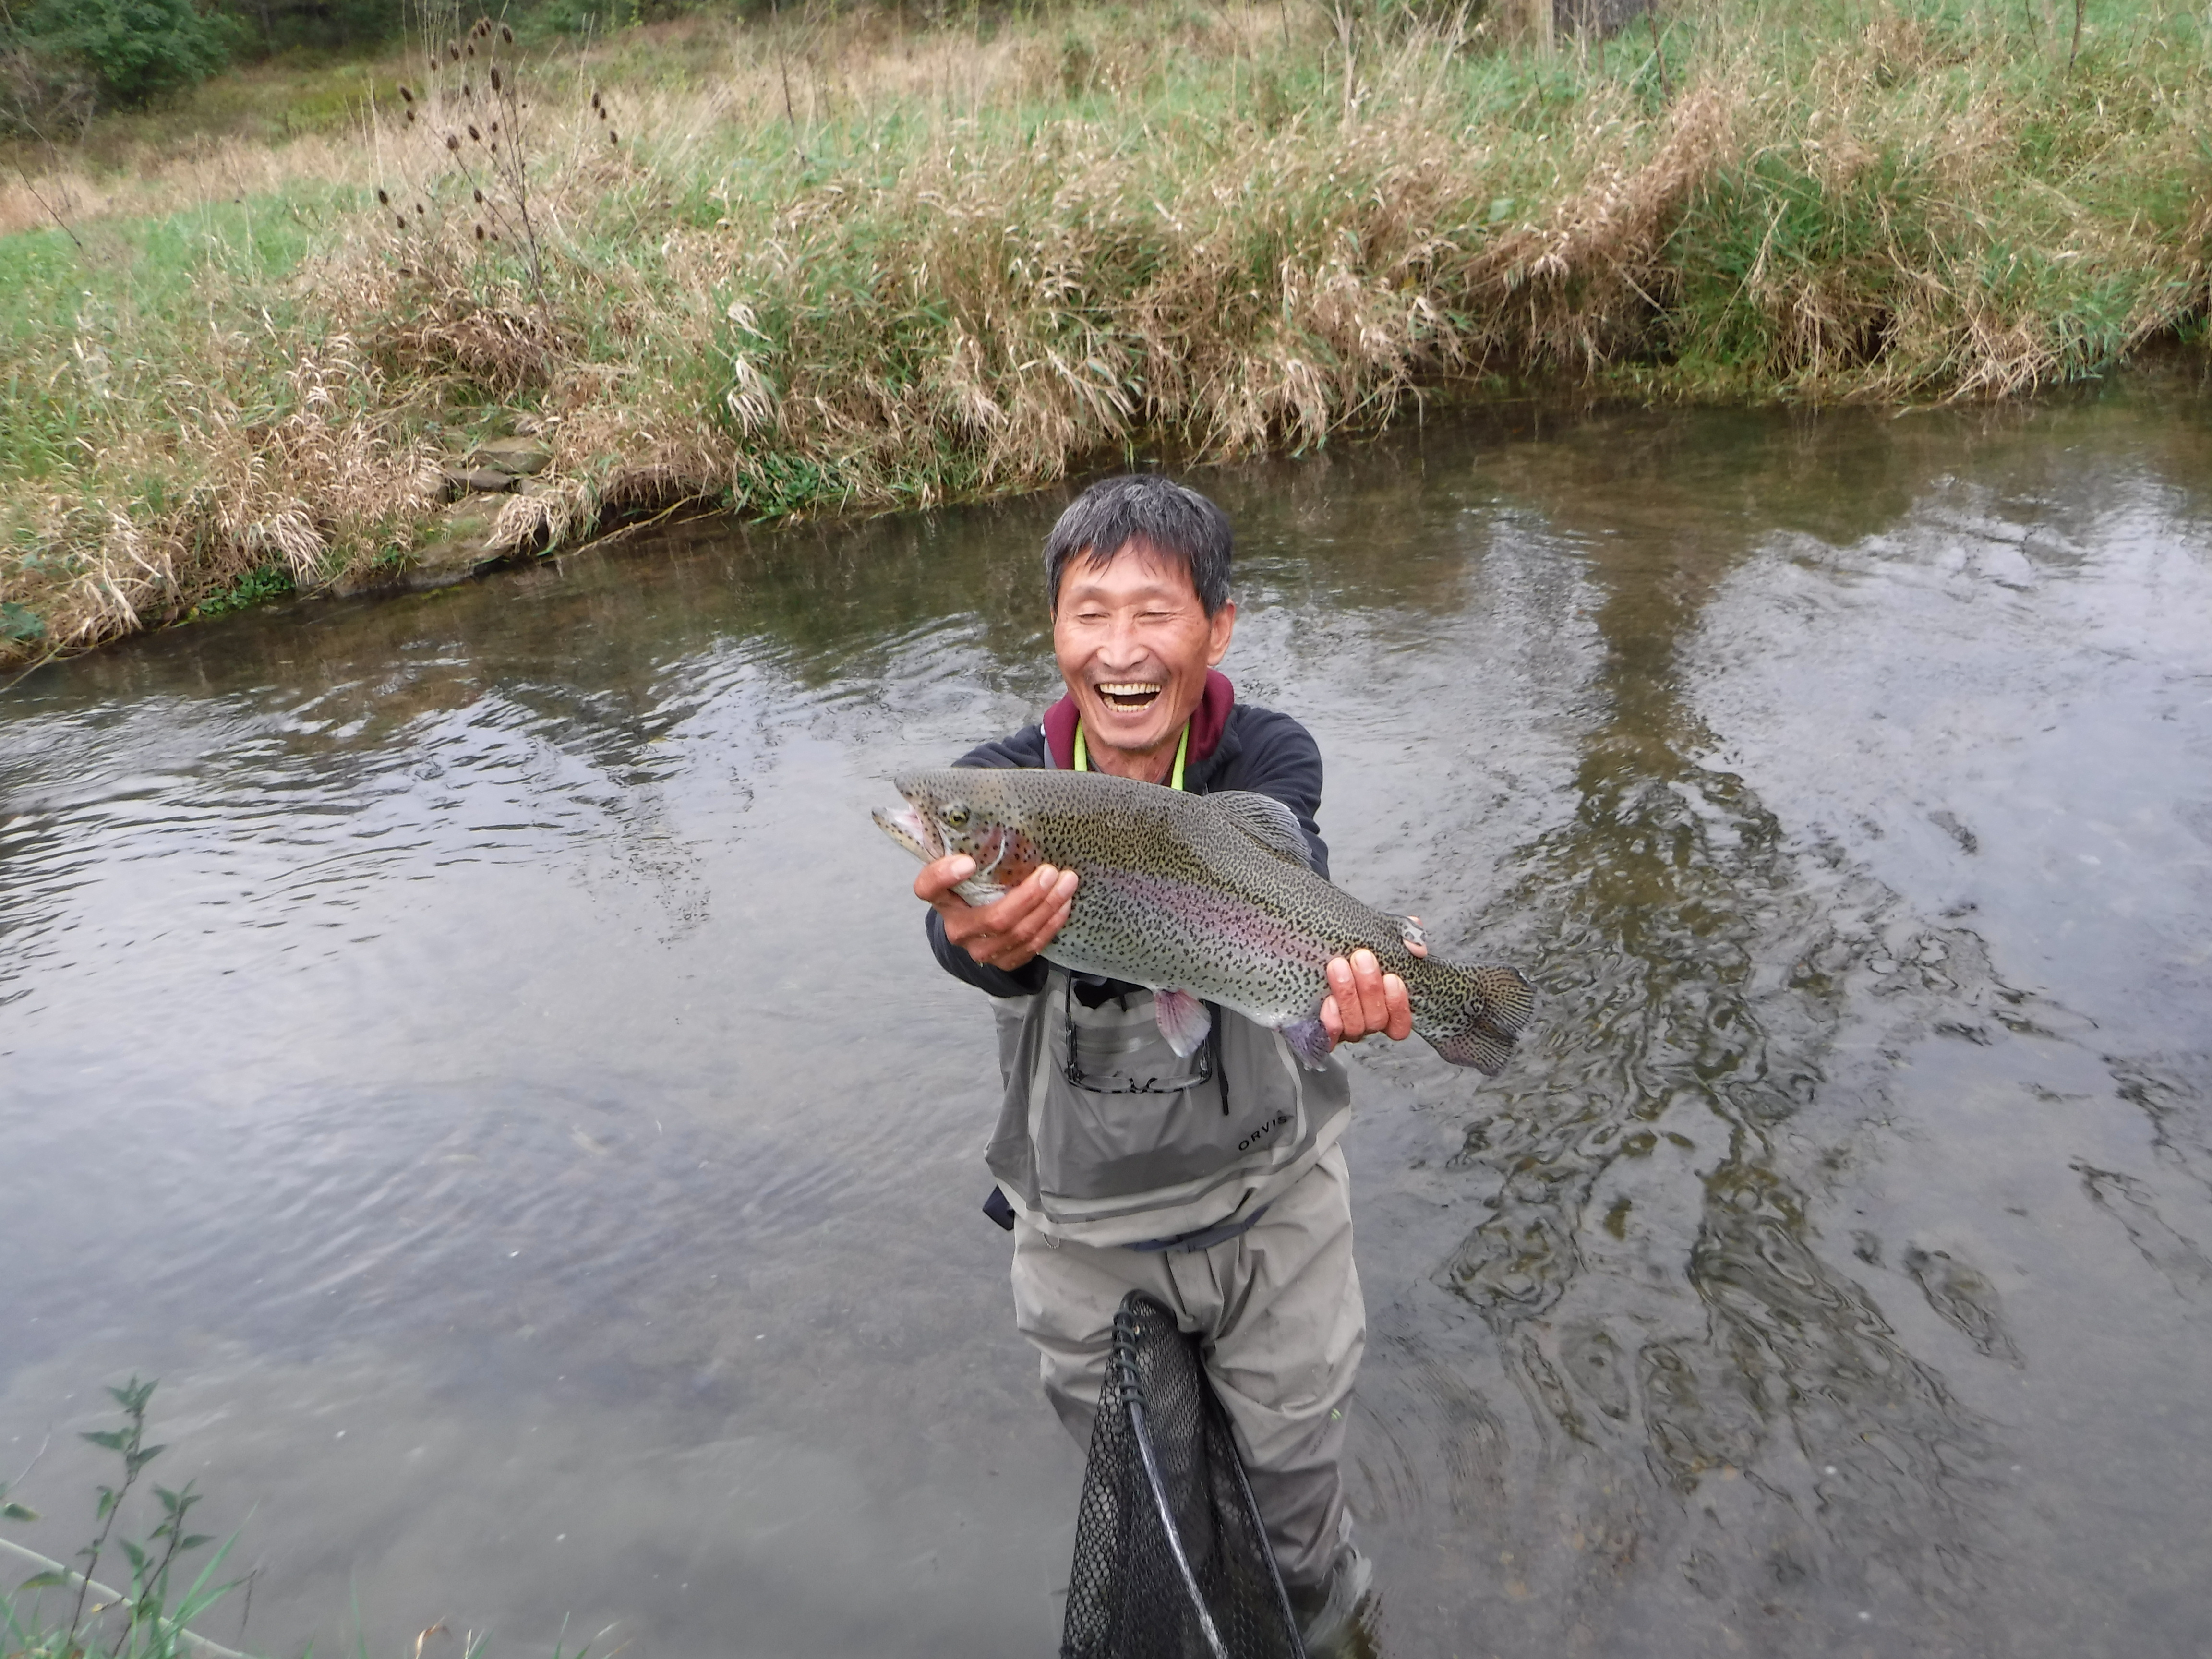 Late season caddis pa fly fishing on spruce creek trout for Pa fly fishing